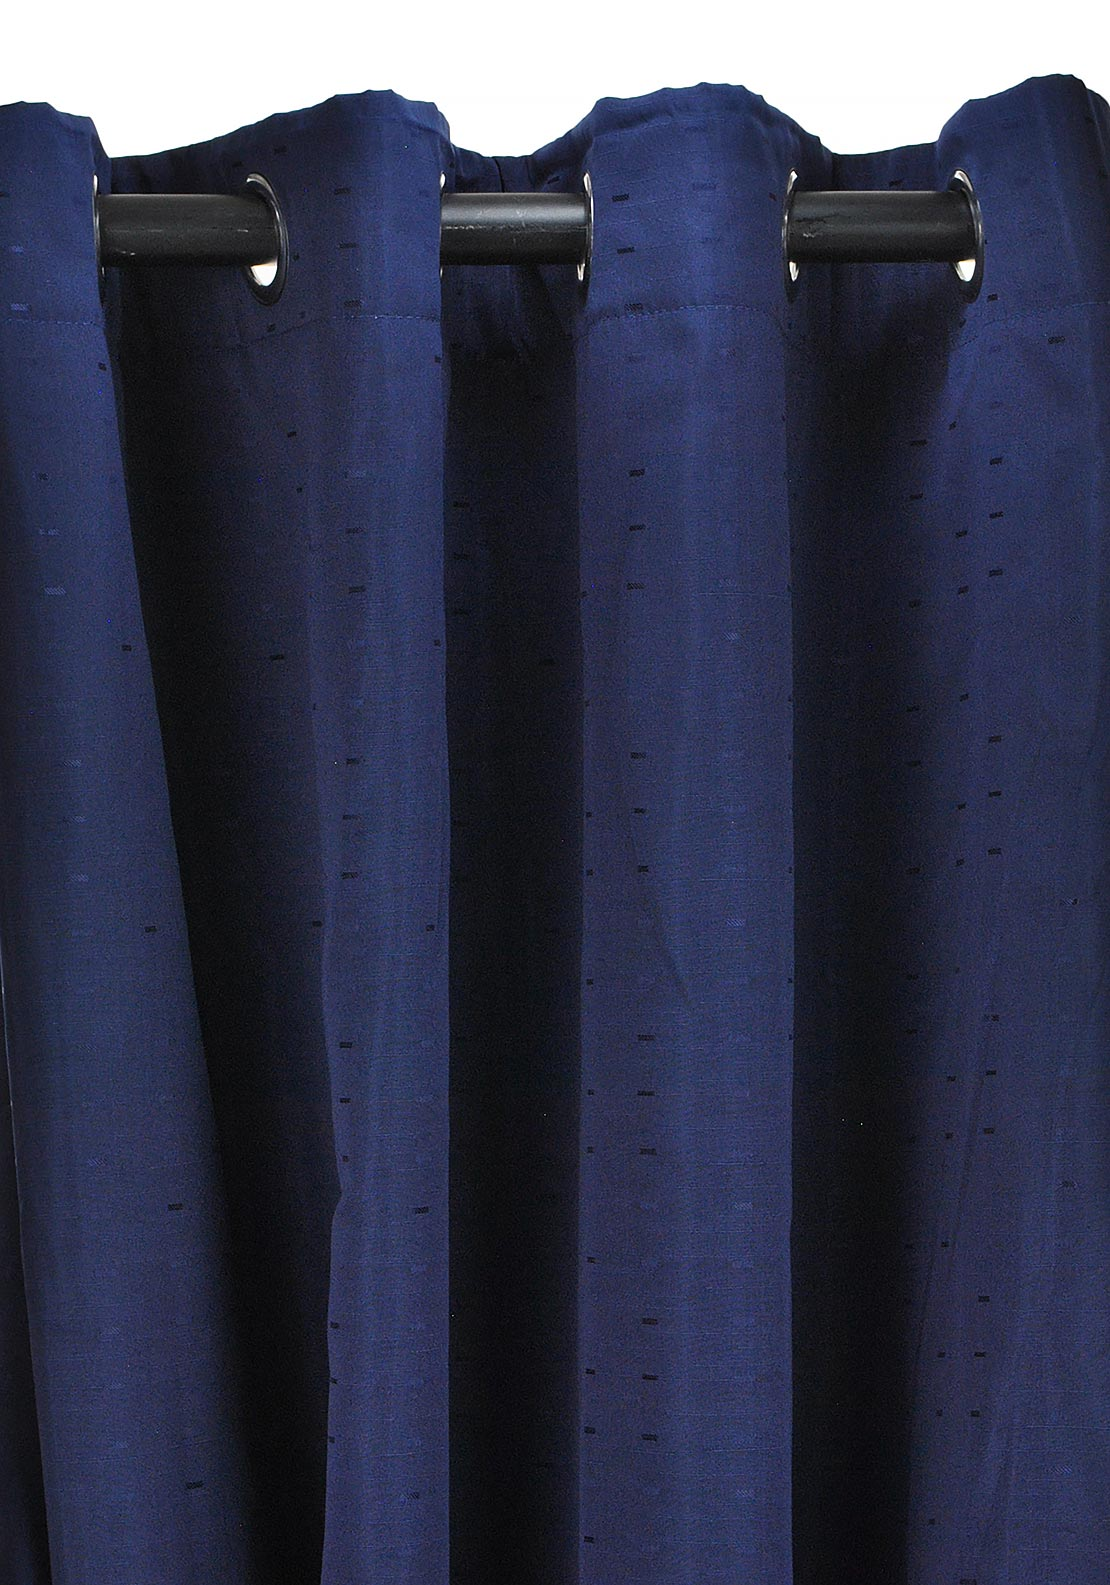 Wilton Collection Miami Readymade Eyelet Curtains, Navy 269 x 229cm